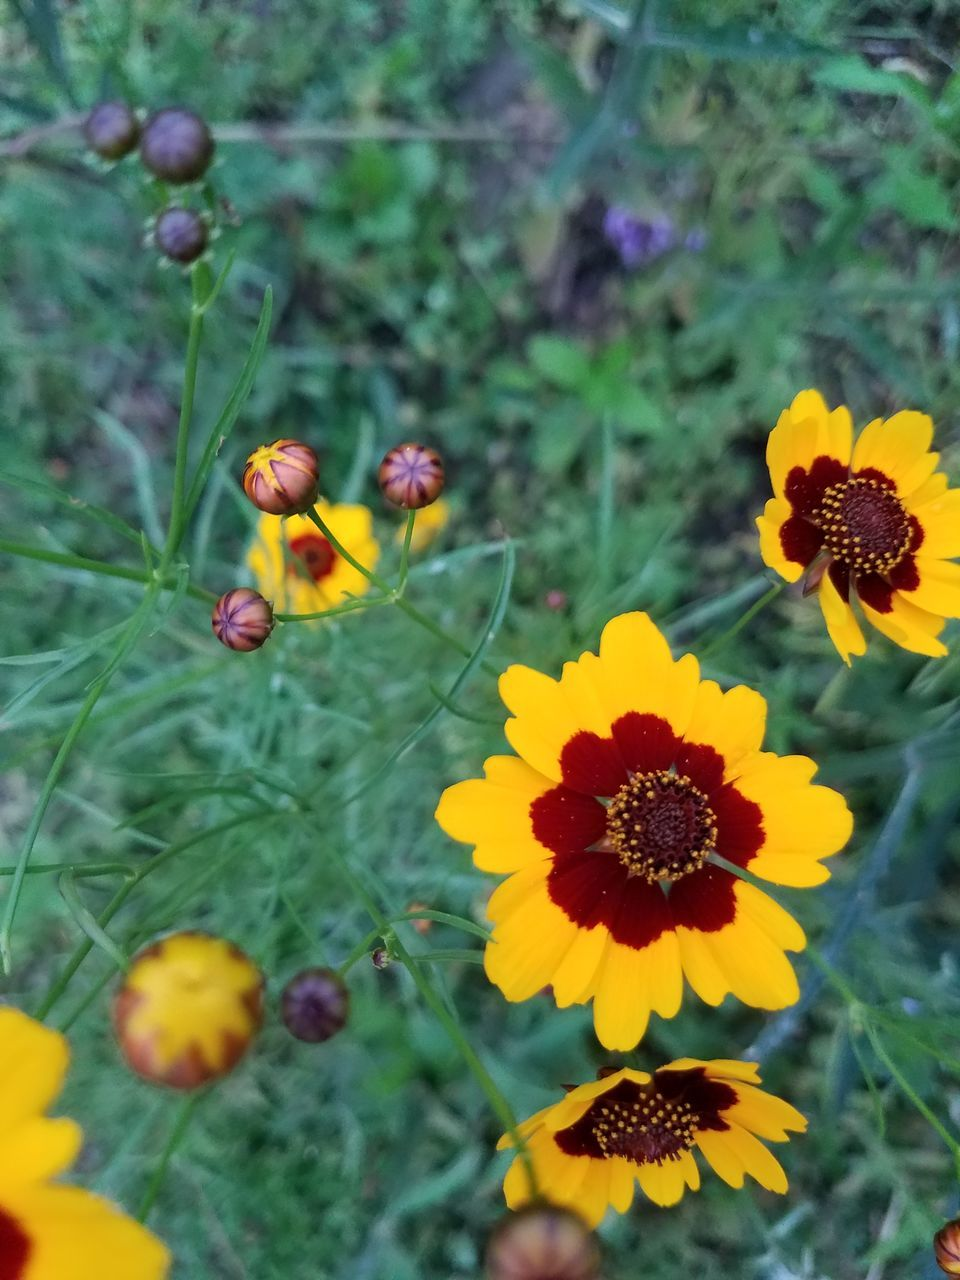 flower, yellow, growth, beauty in nature, nature, plant, fragility, outdoors, day, no people, freshness, petal, flower head, close-up, animal themes